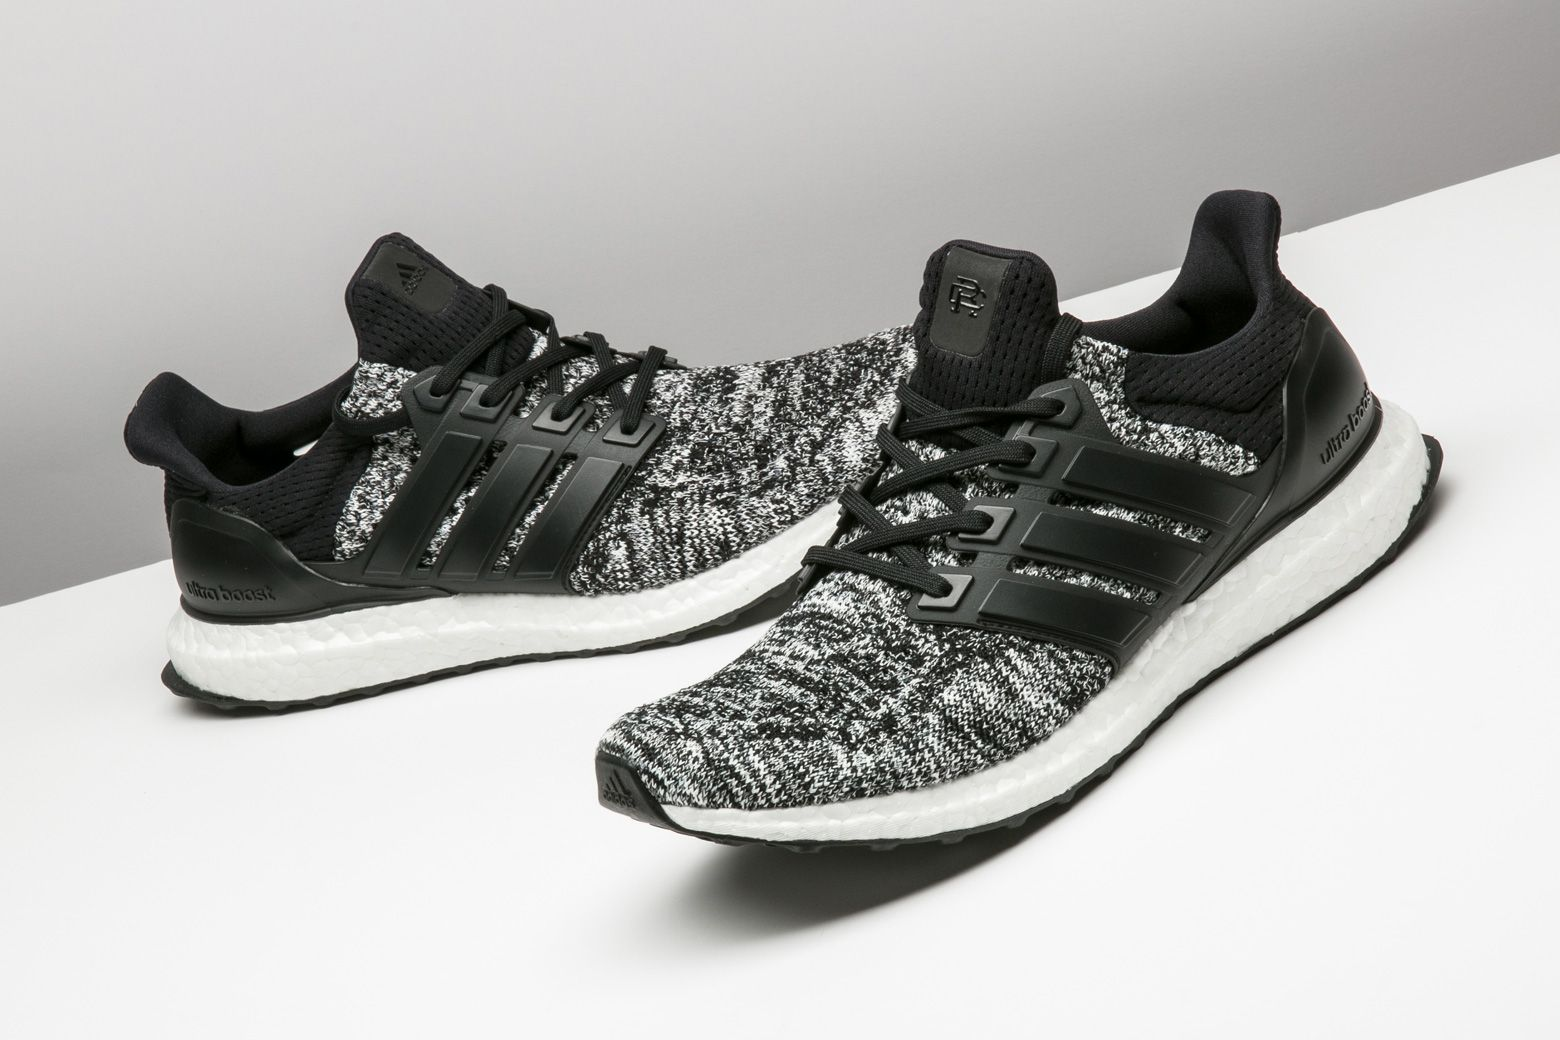 bc5e9e9603f5b The wool Primeknit upper on the Reigning Champ x adidas Ultra Boost makes  it a winter essential.  adidas